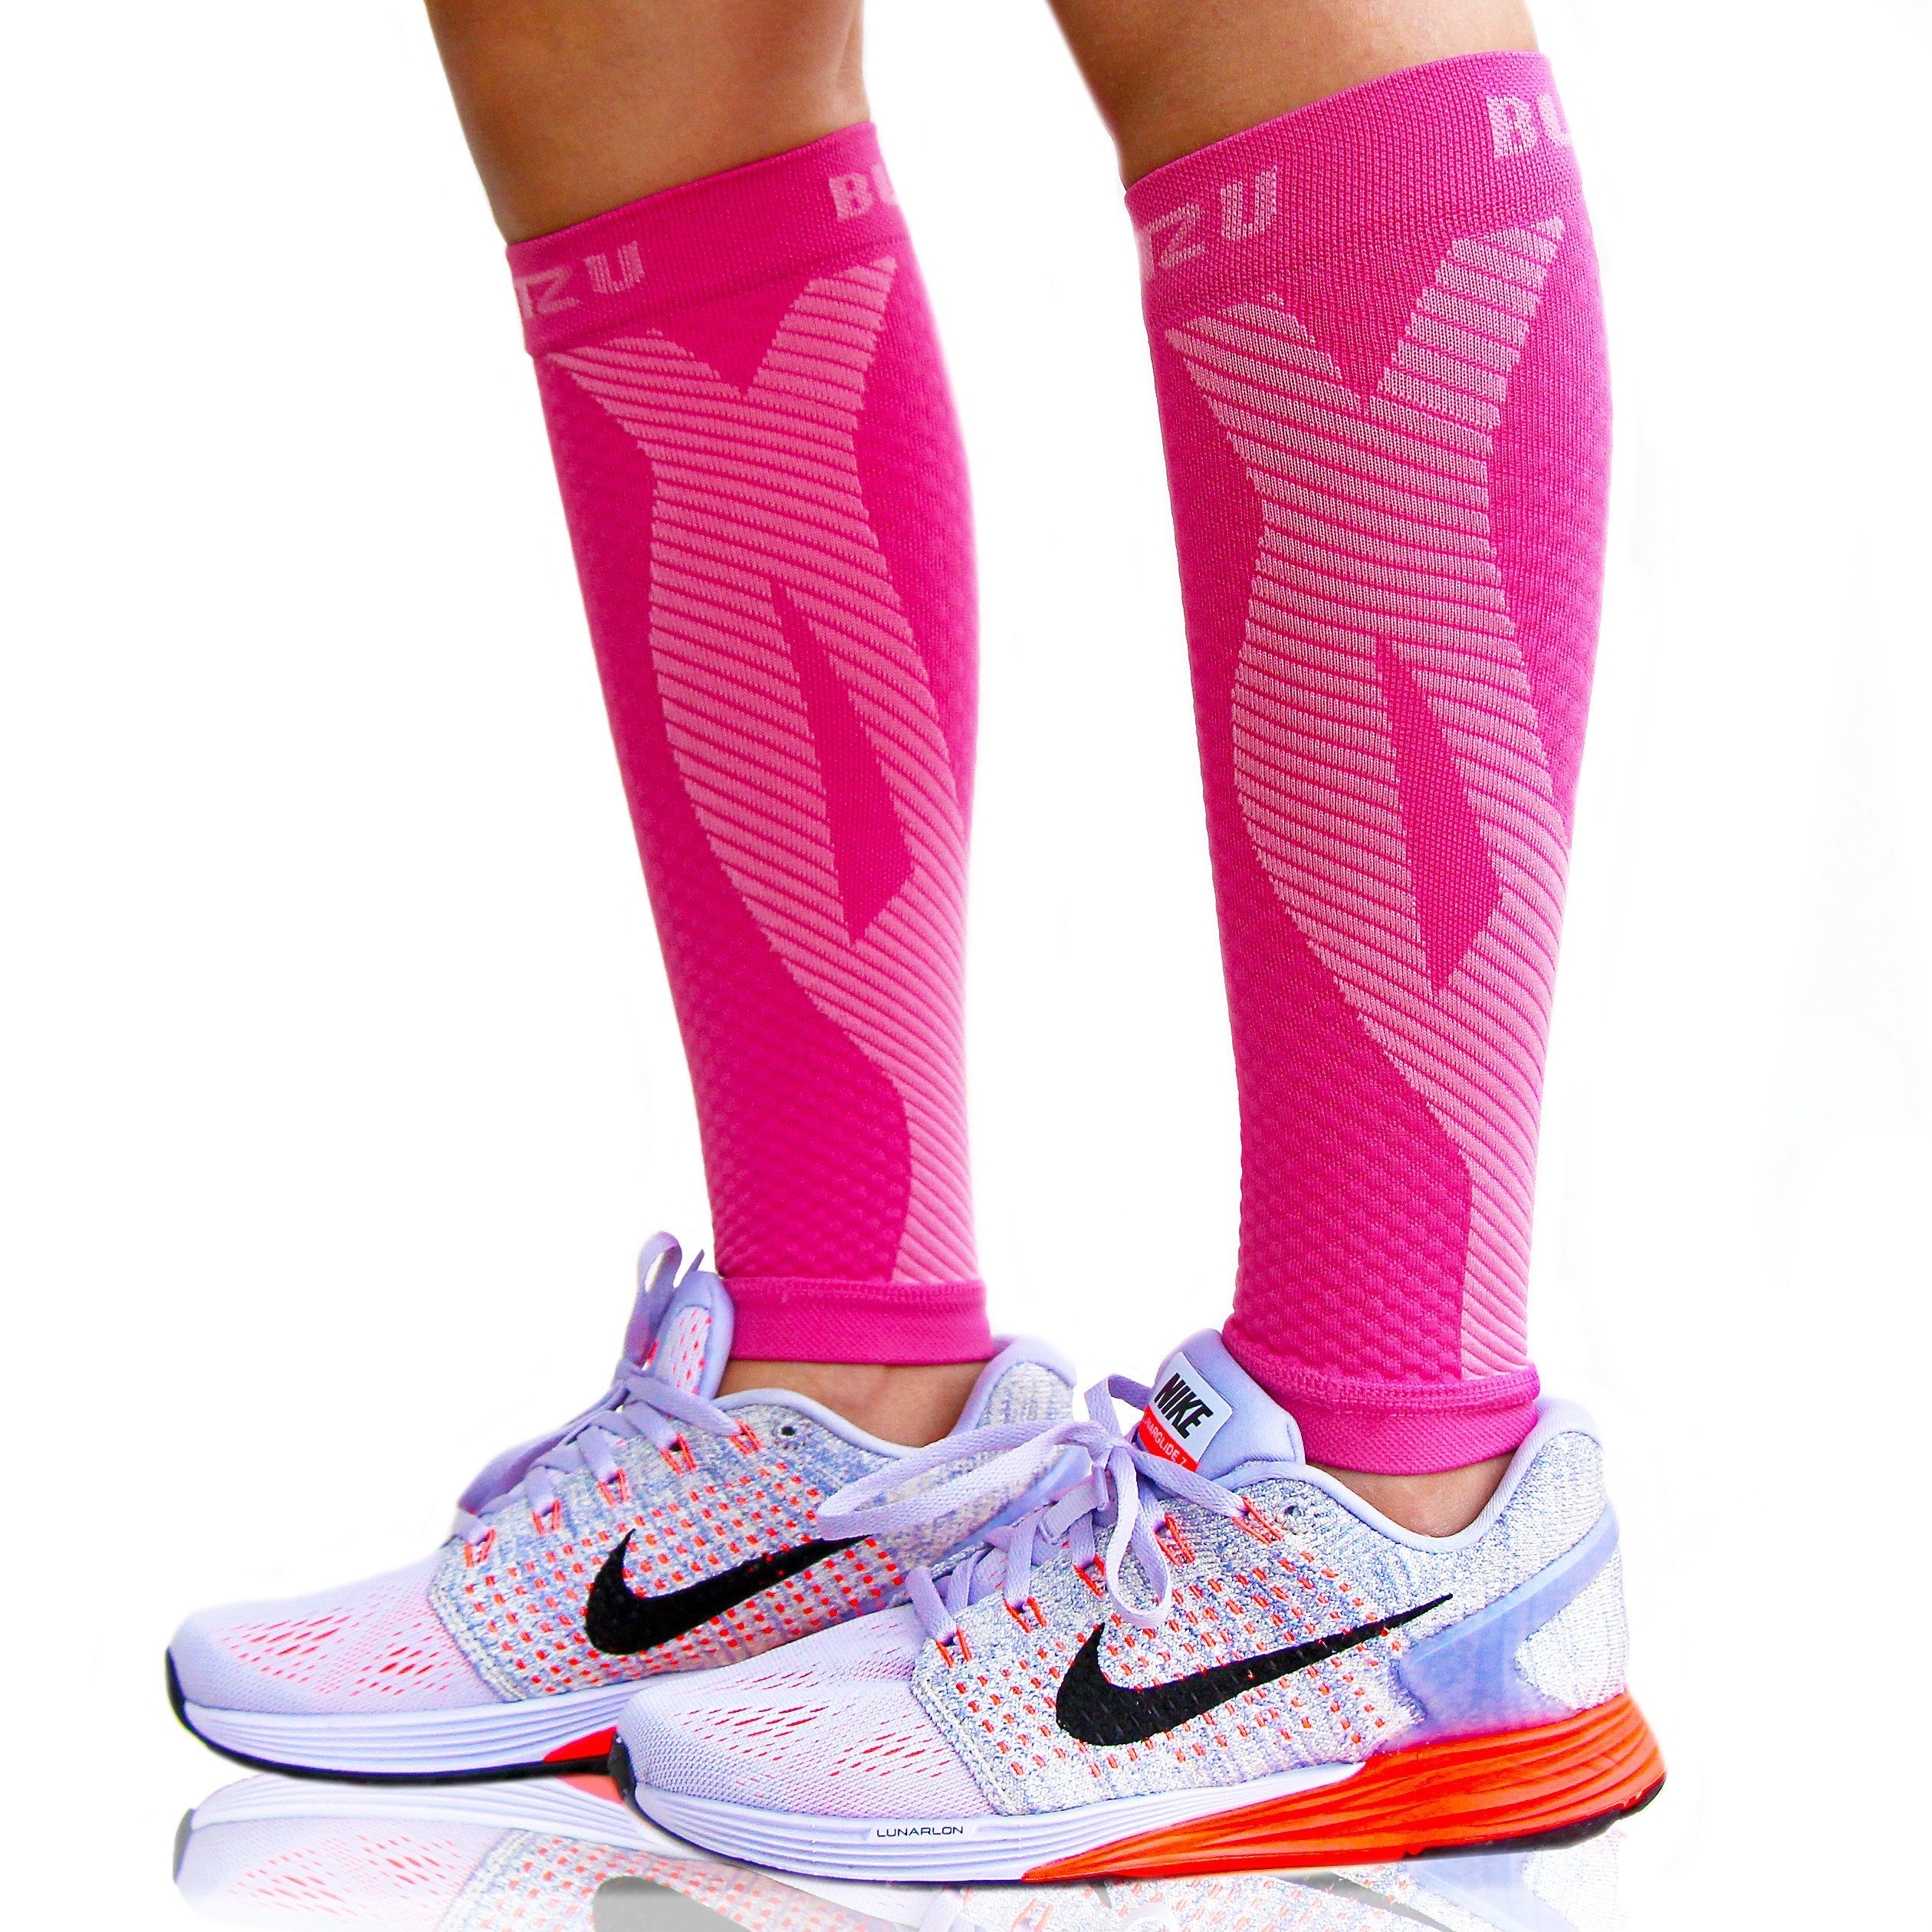 28 Best Running Shoes For Shin Splints Lifestyle Compression Leg